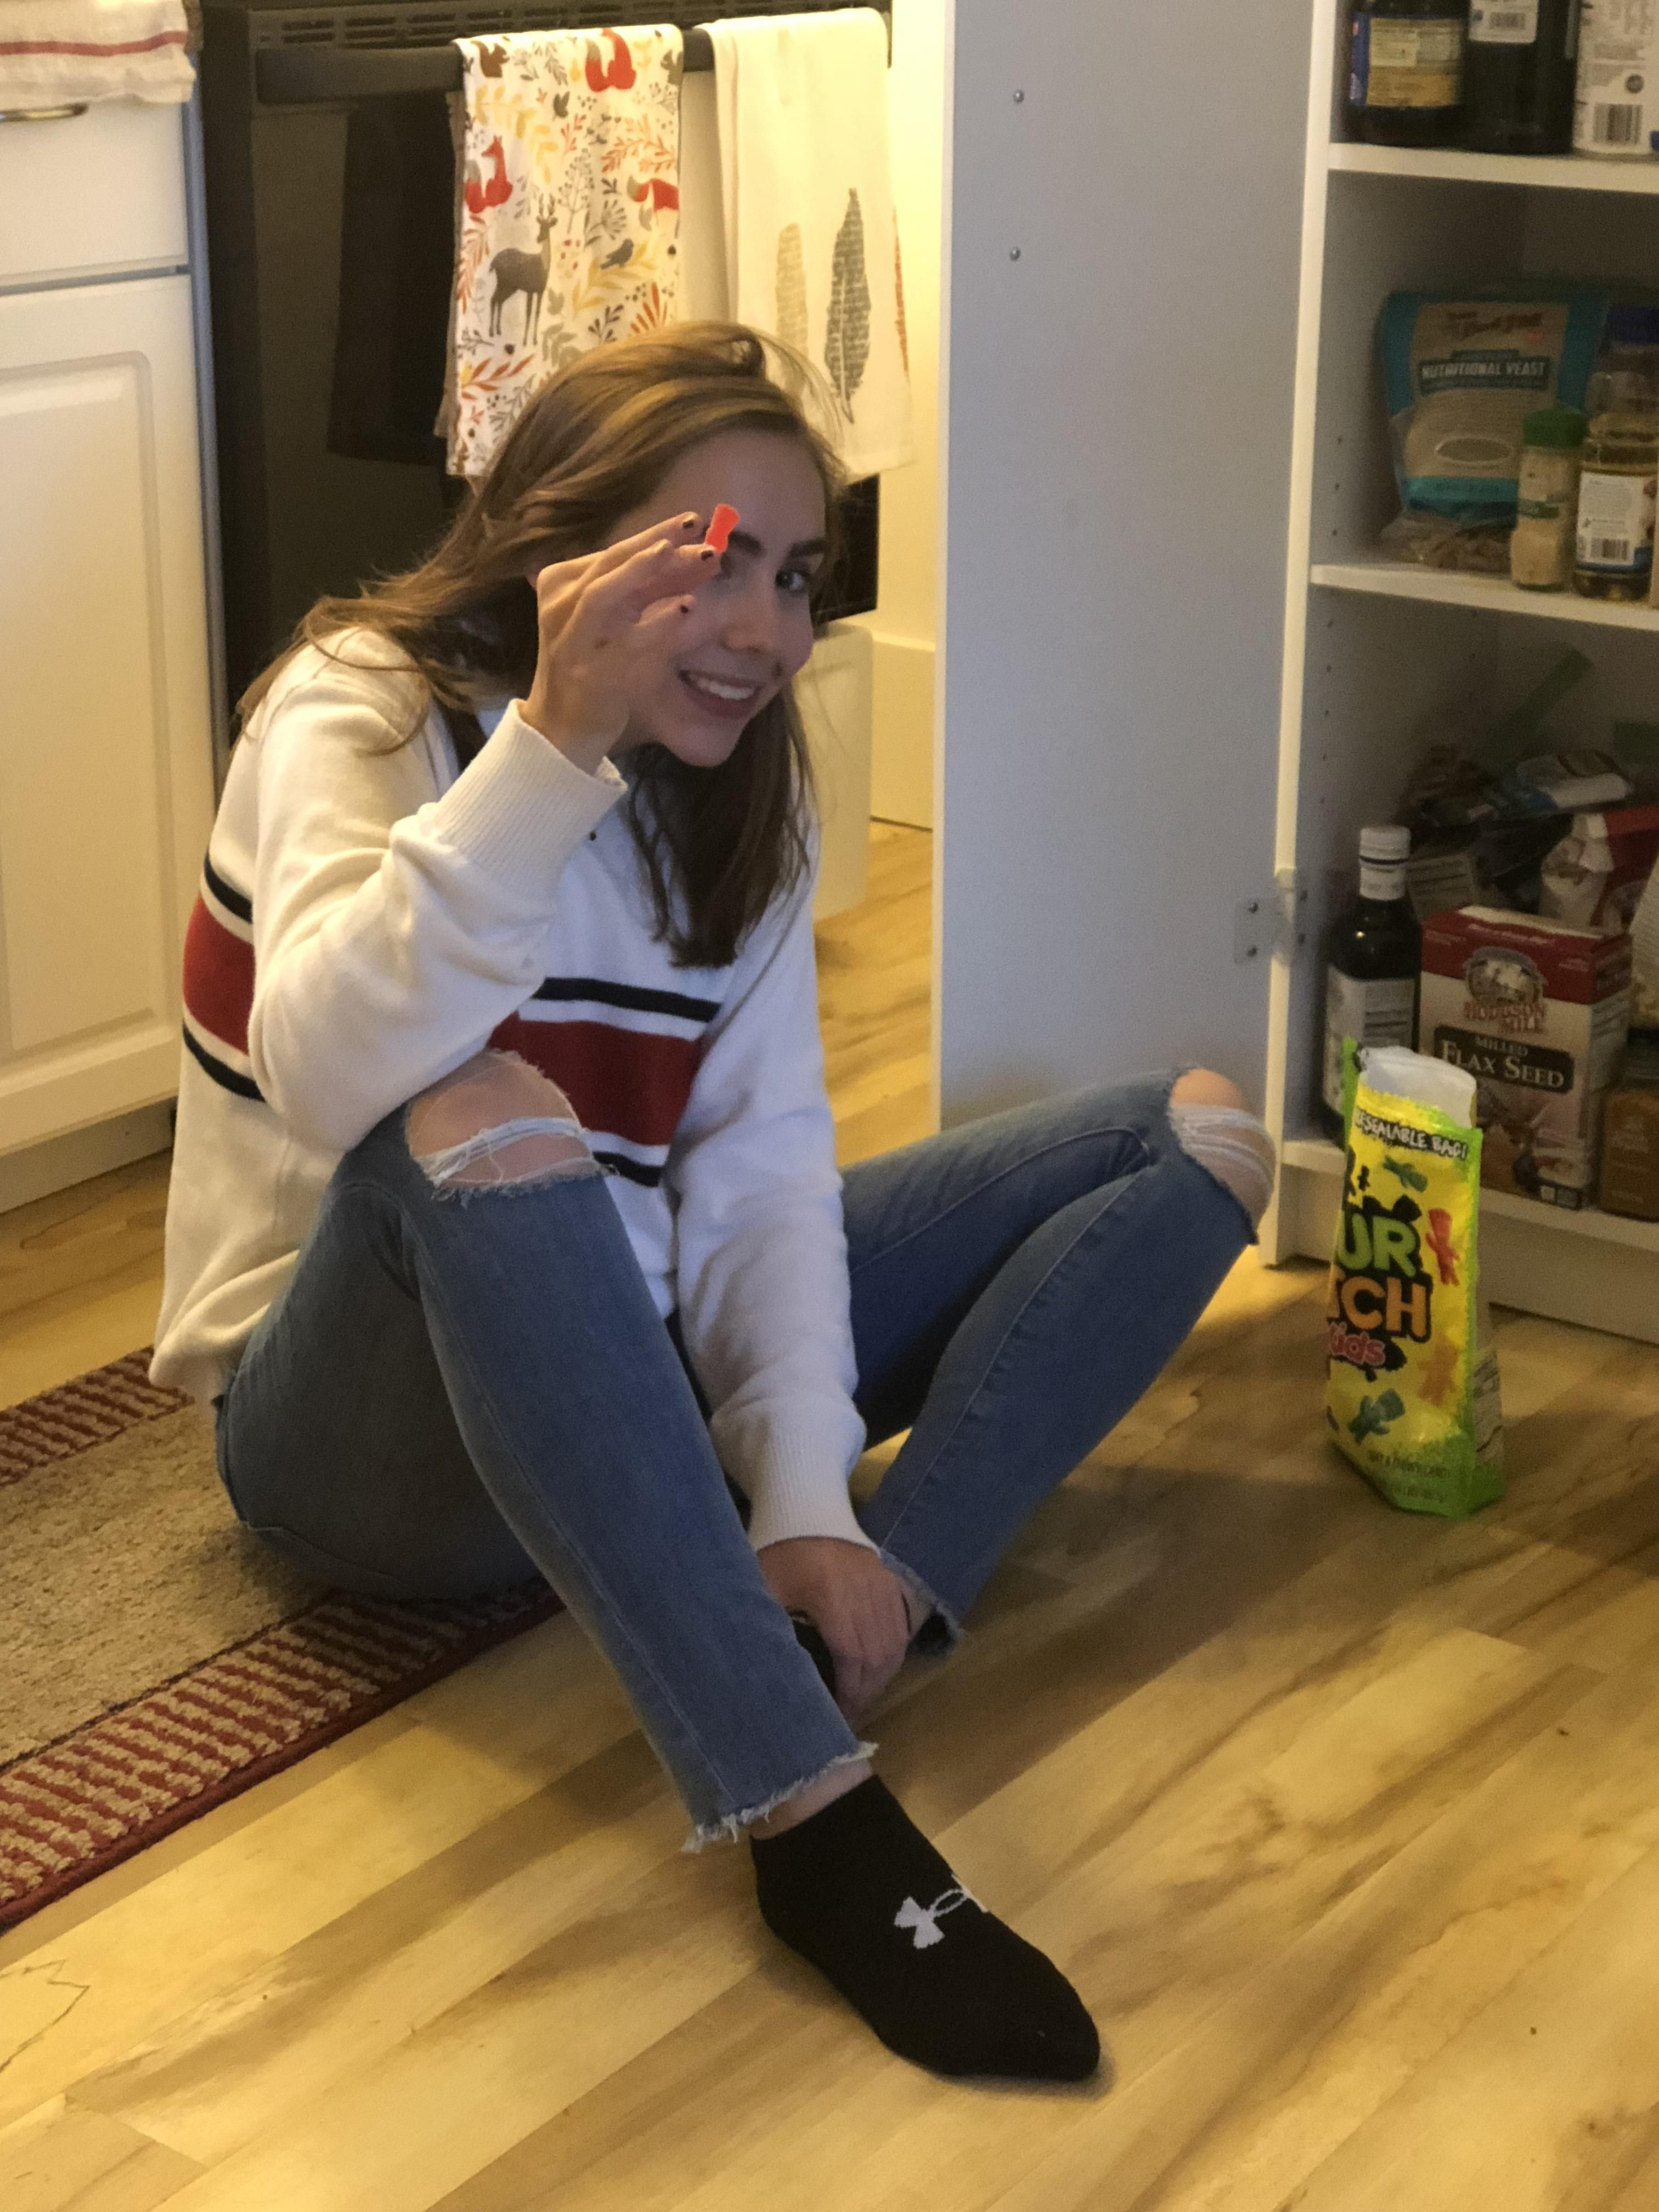 My Vegan Roommate Eating Sour Patch Kids Out Of A 2 Pound Bag Of Them On The Floor Of Our Apartment